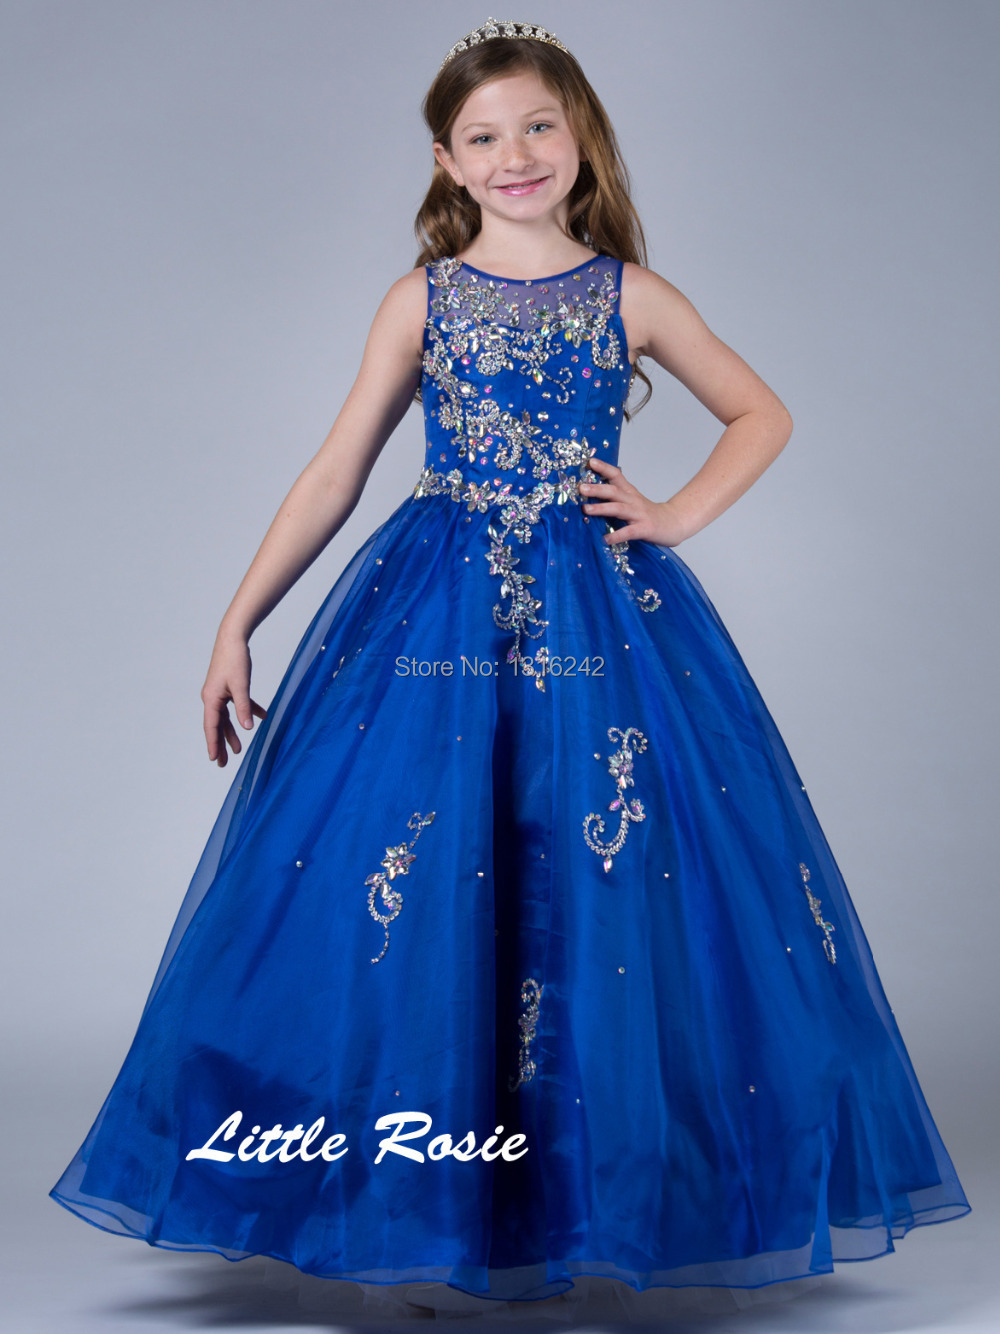 Party Dresses For Big Girls 80